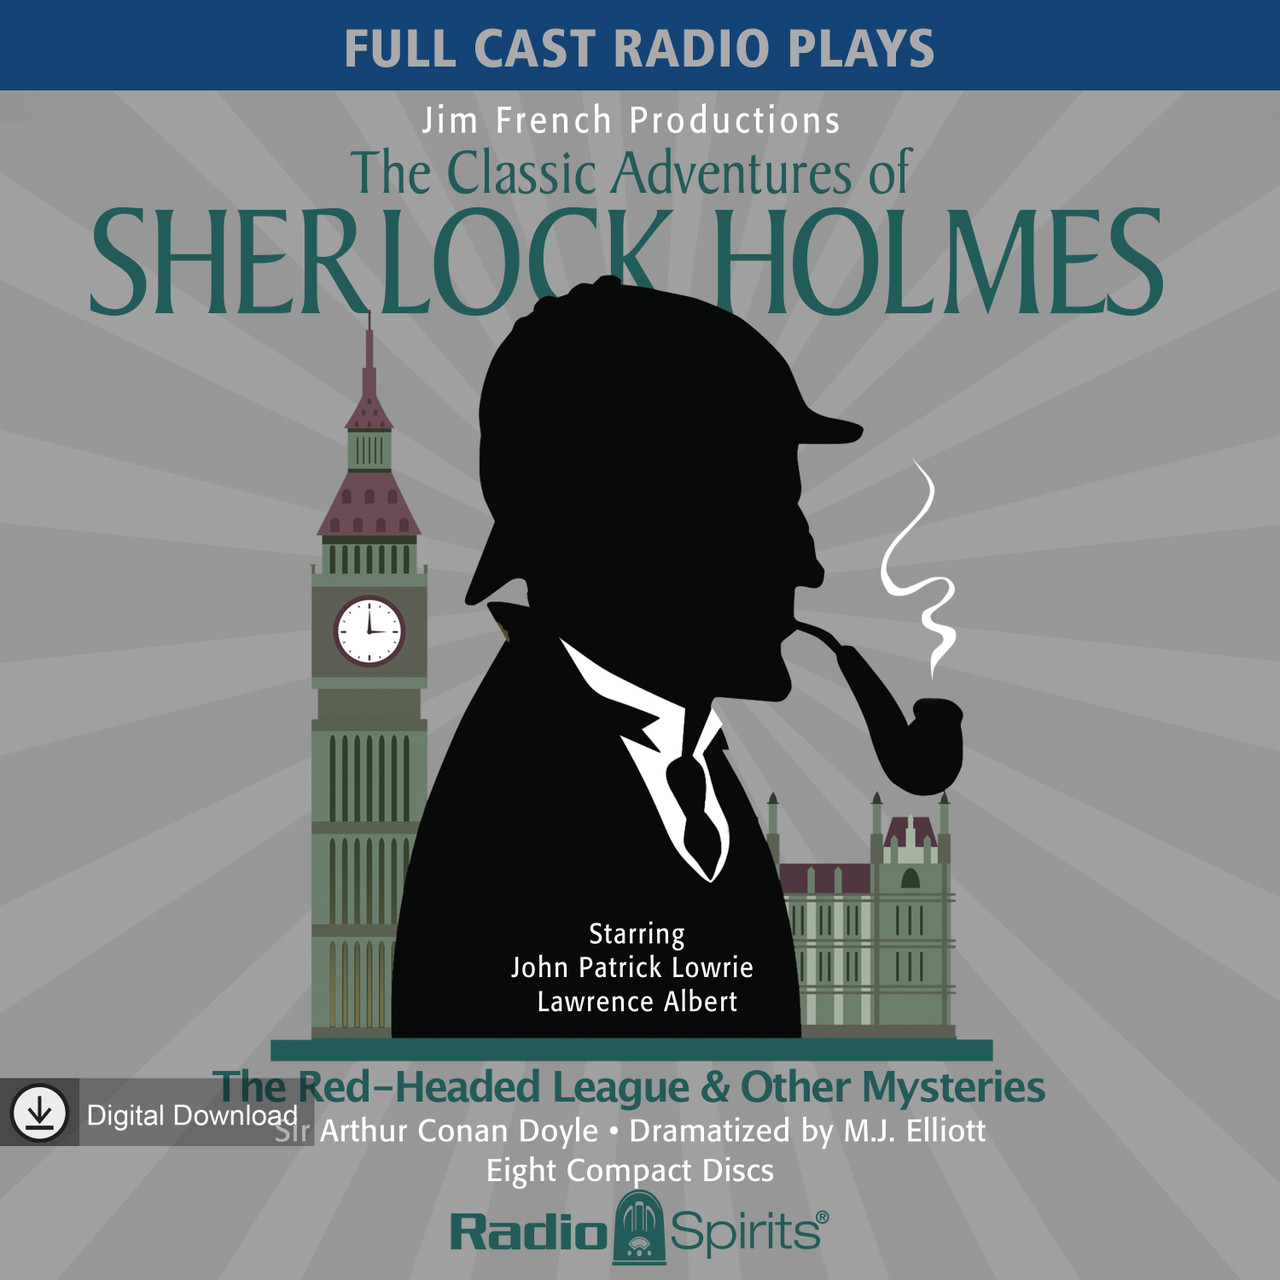 The Classic Adventures of Sherlock Holmes: The Red-Headed League & Other Mysteries (MP3 Download)